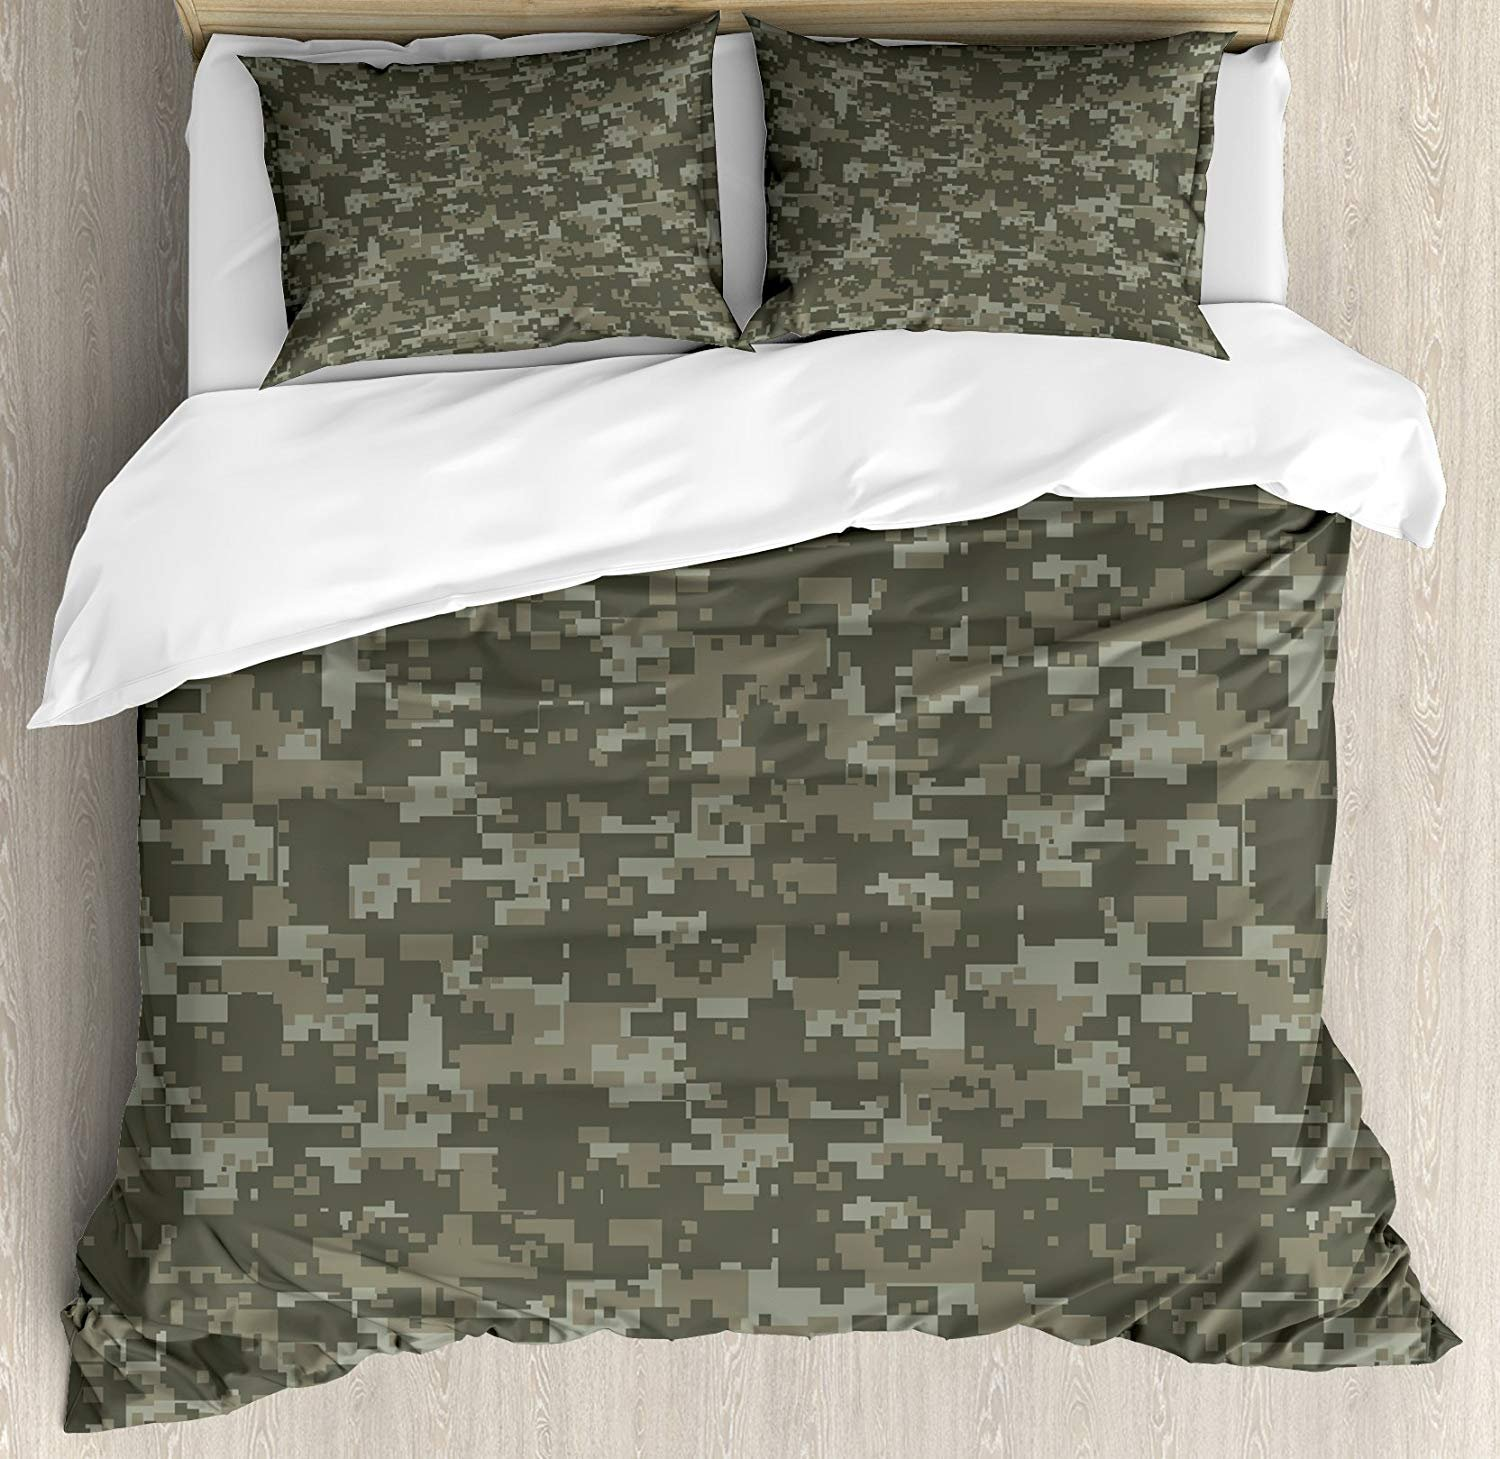 Twin Size Camouflage 3 PCS Duvet Cover Set, Monochrome Attire Pattern Concealing Hiding in The Woods Themed Print, Bedding Set Quilt Bedspread for Children/Teens/Adults/Kids, Army Green Sage Green by Anzona (Image #1)